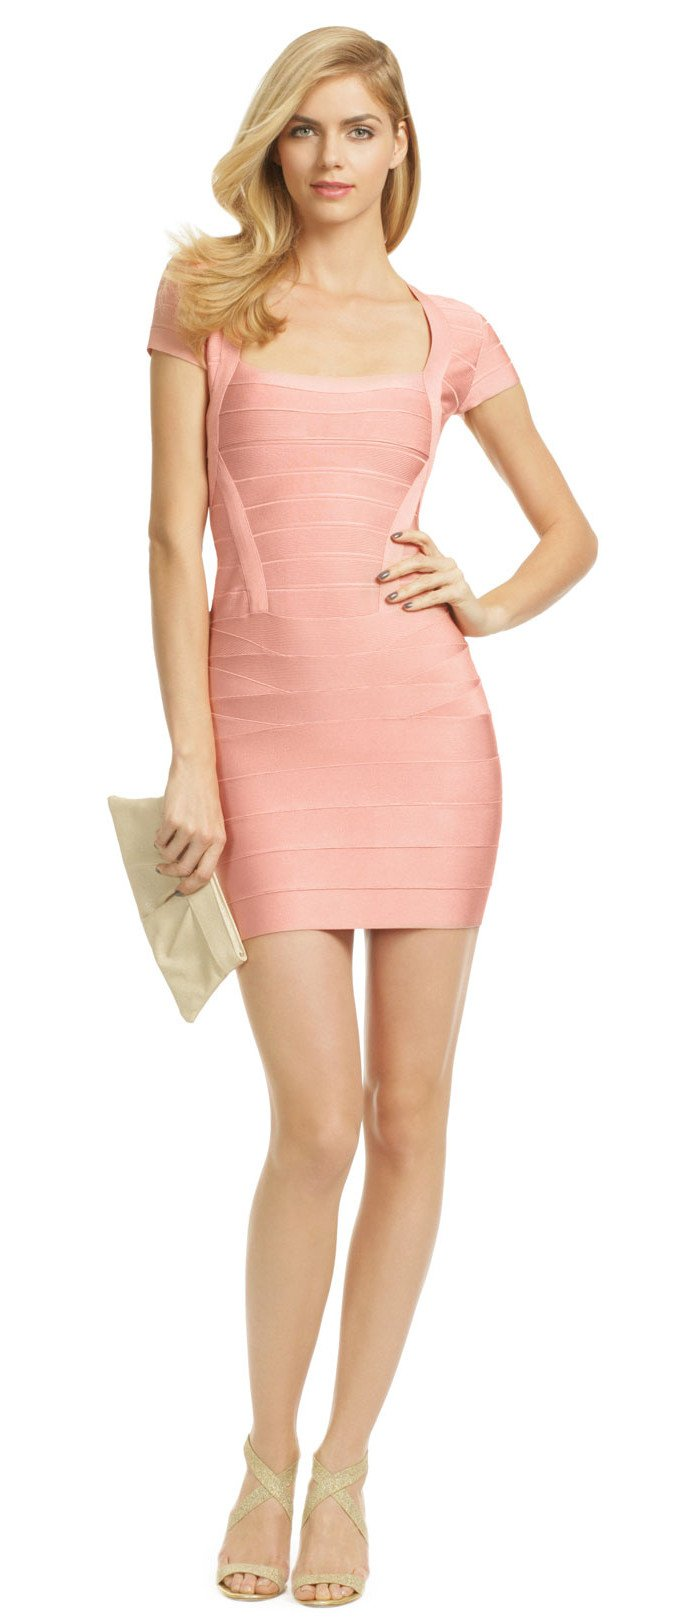 Hervé Léger Guys Kind Of Girl Dress, party pretty in pink on Valentine's Day